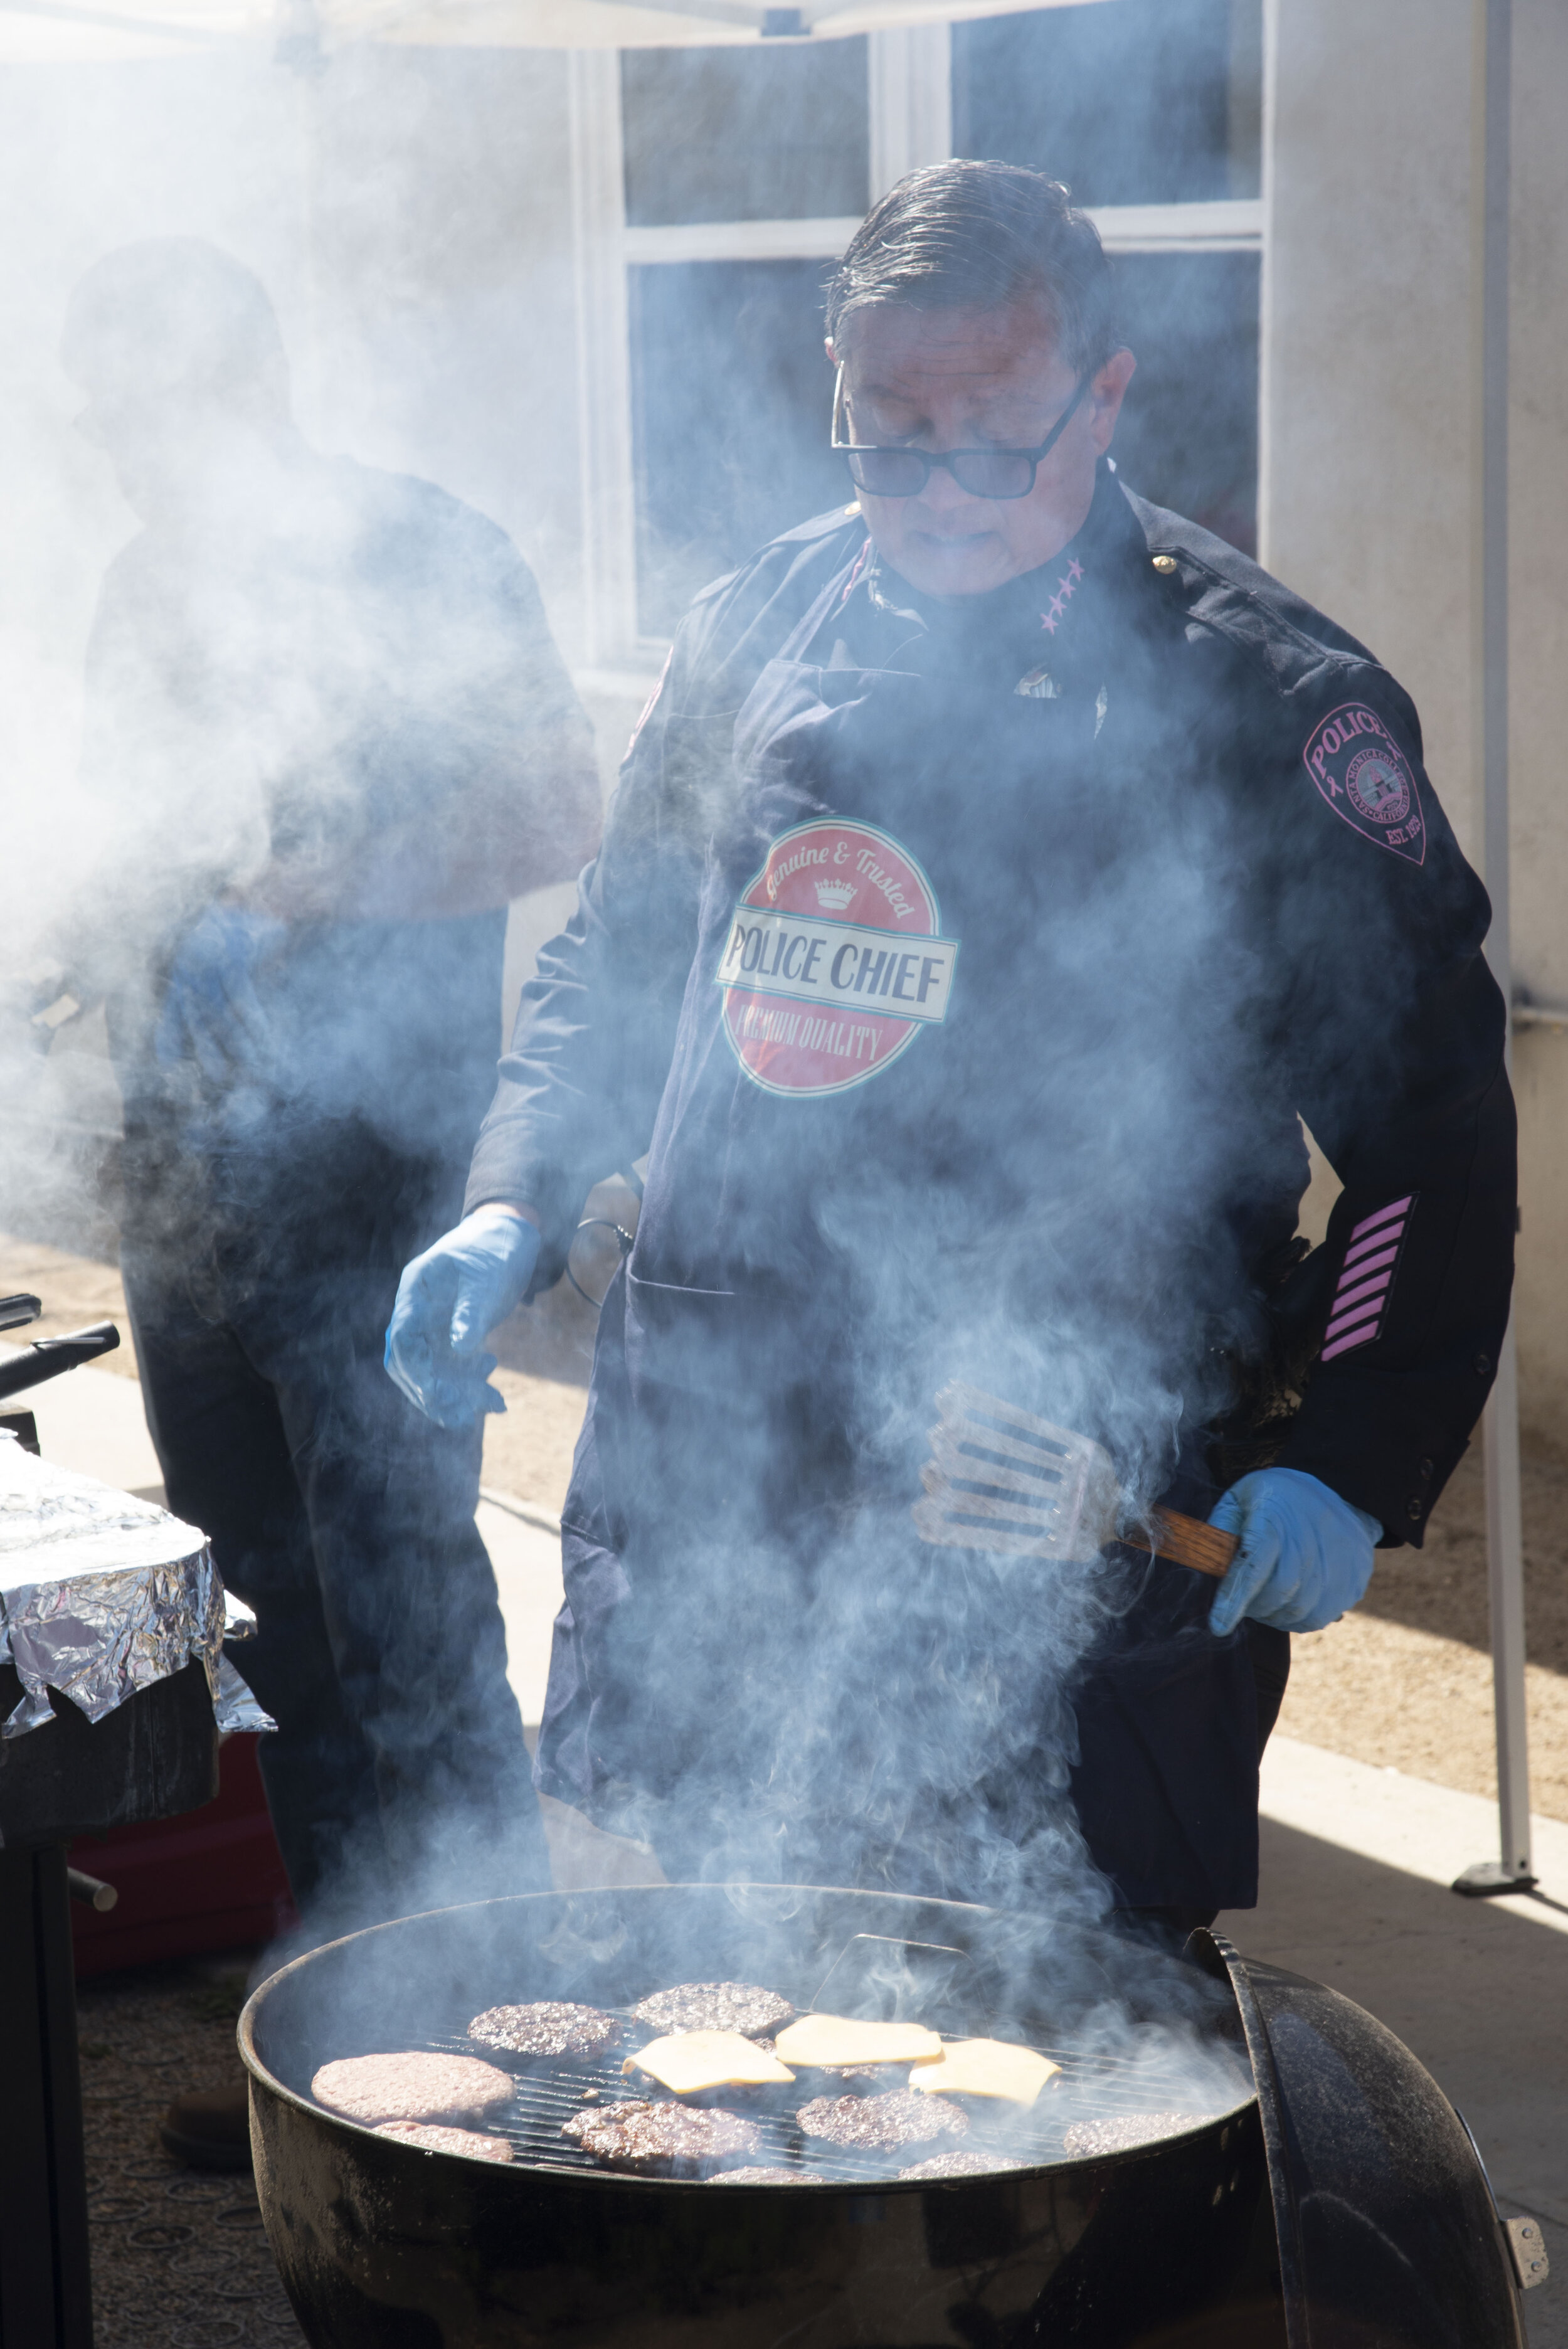 SMC Chief of Police, Johnnie Adams, endures the smoke and heat to prepare burgers and hot dogs at the barbecue on Tuesday, October 8th, 2019 at their headquarters across from Santa Monica College, in Santa Monica, California.  (Rachel O'Brien/The Corsair)